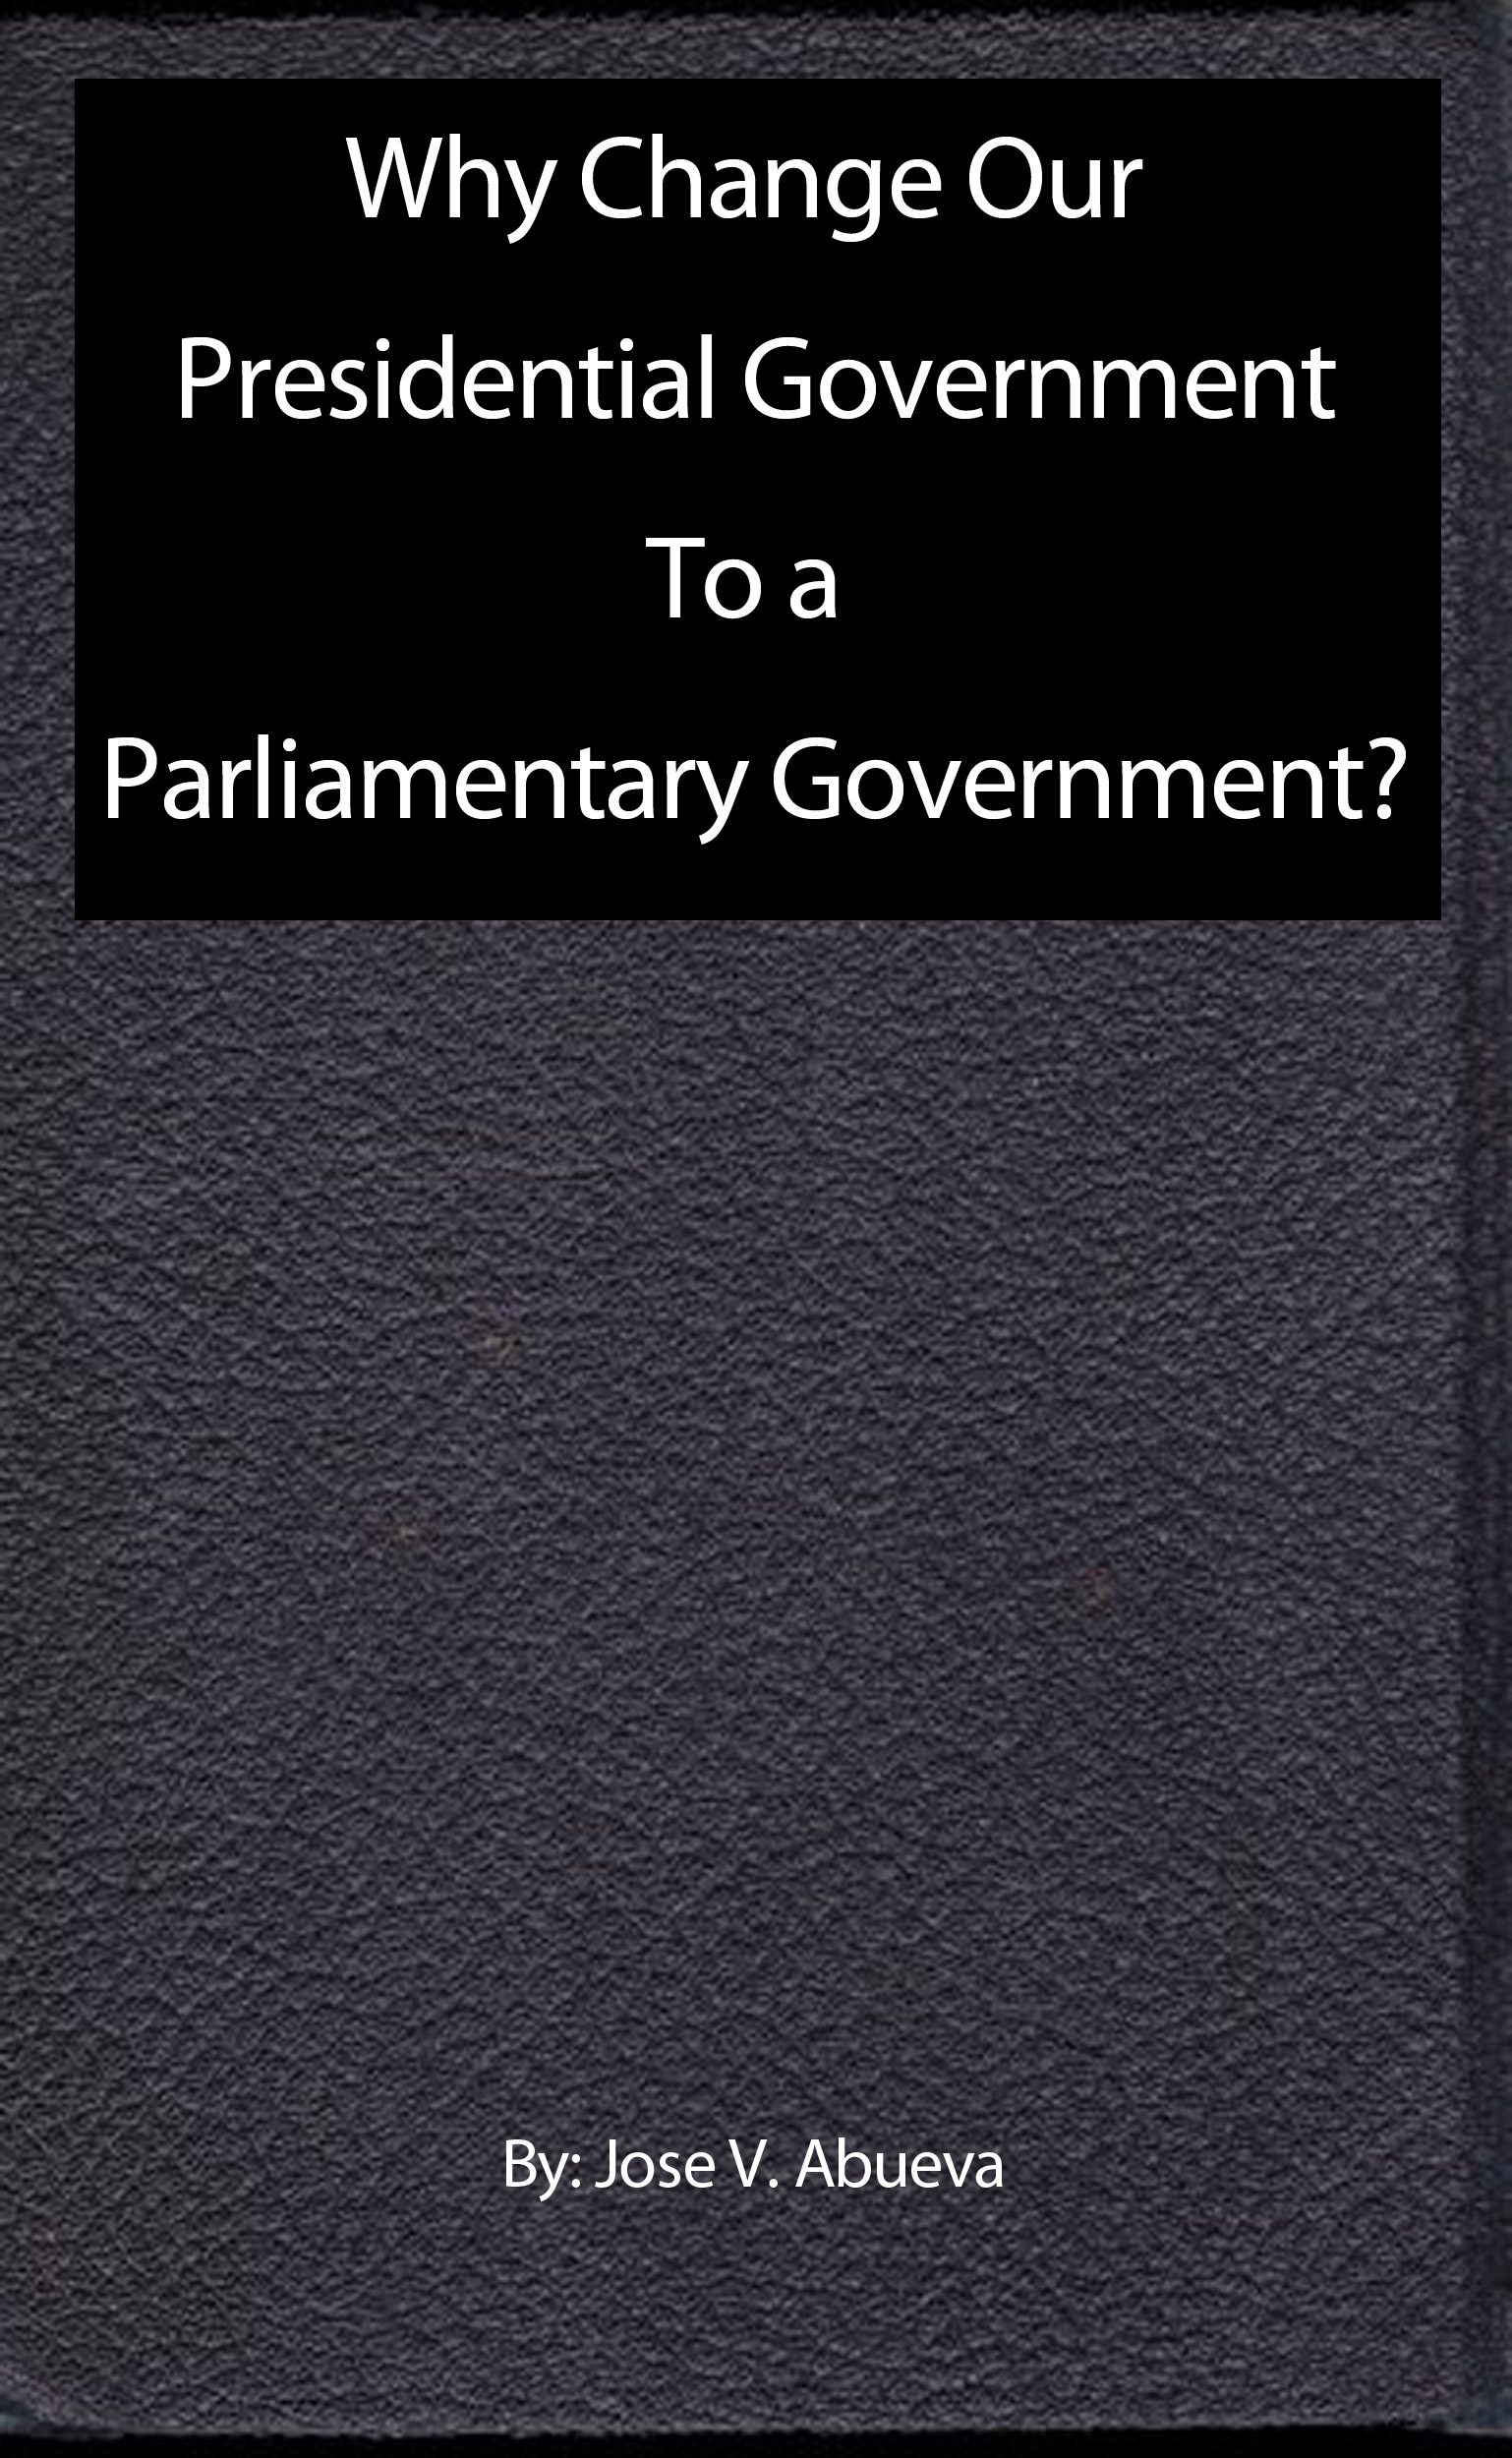 Why Change Our Presidential Government To a Parliamentary Government?